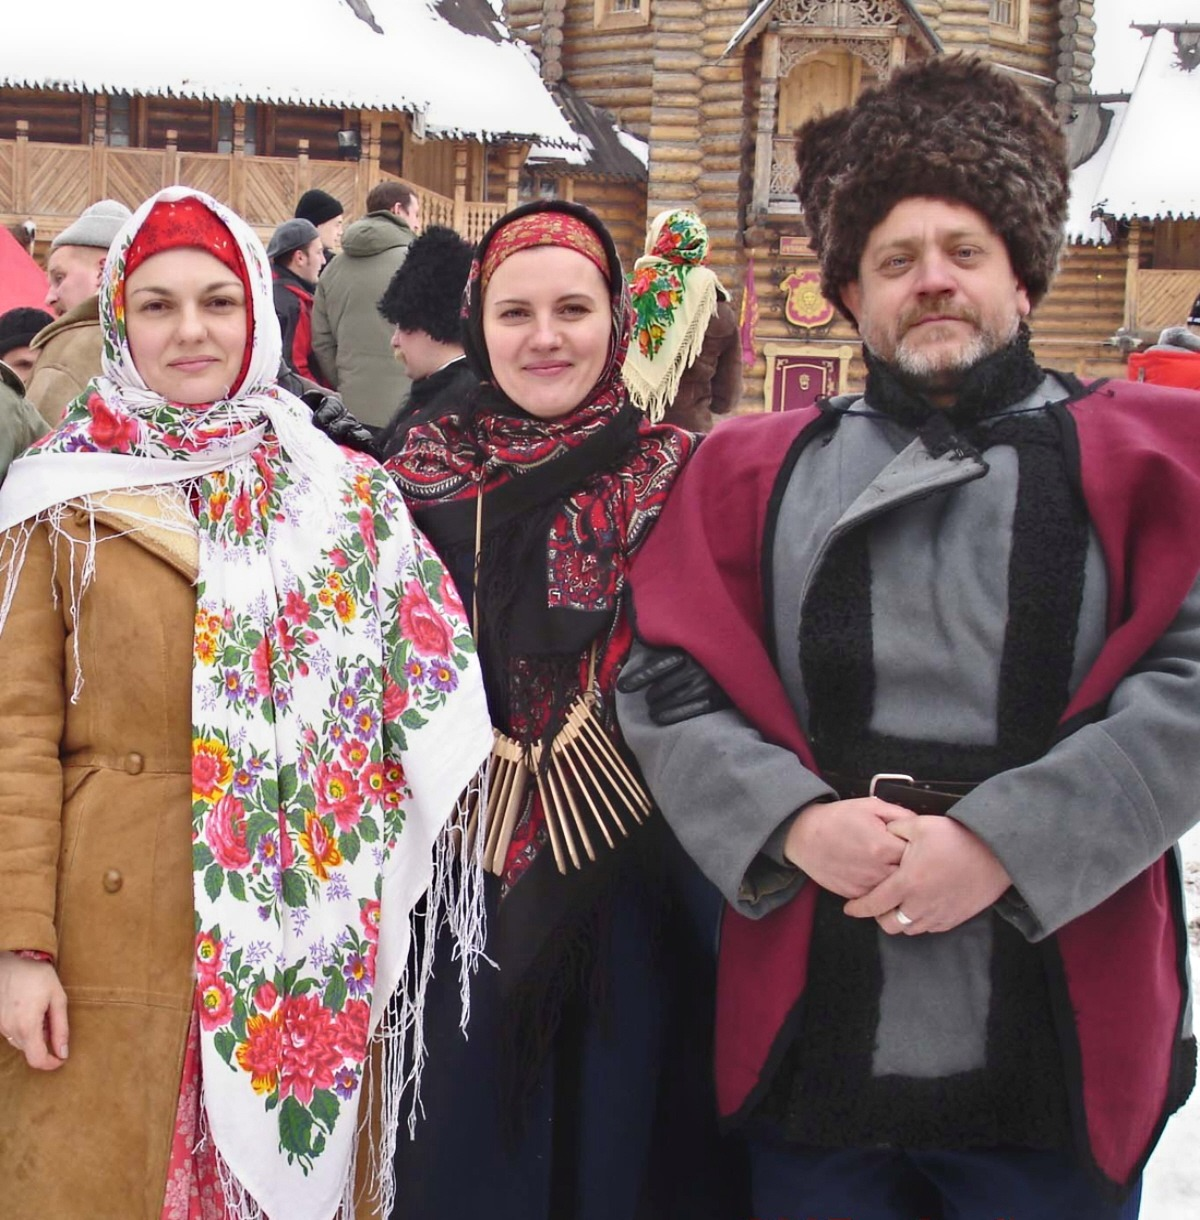 00 Russian Cossacks at Maslenitsa Carnival in Ismailovo